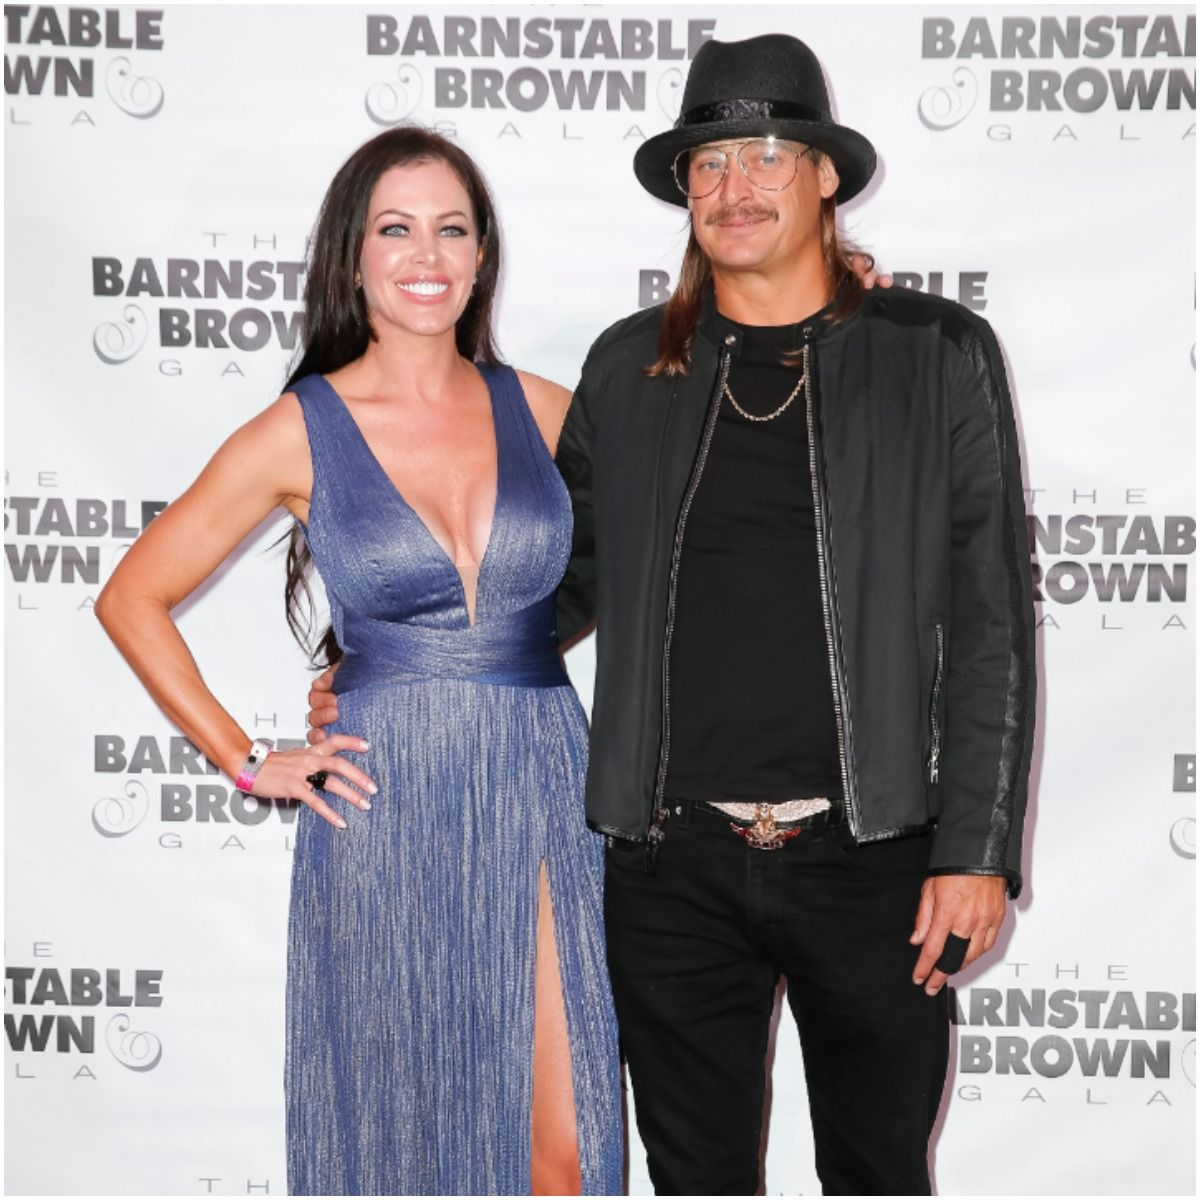 Kid Rock with his fiancée Audrey Berry